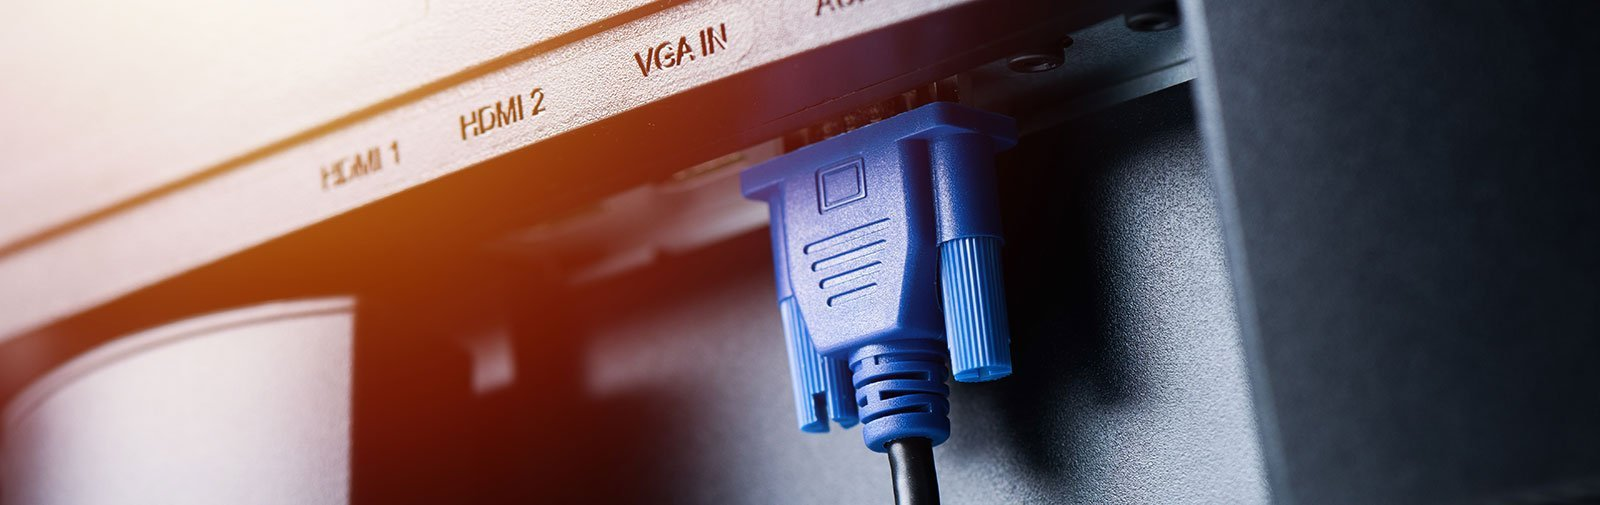 Top Advantages of DVI vs VGA for Computer Monitors